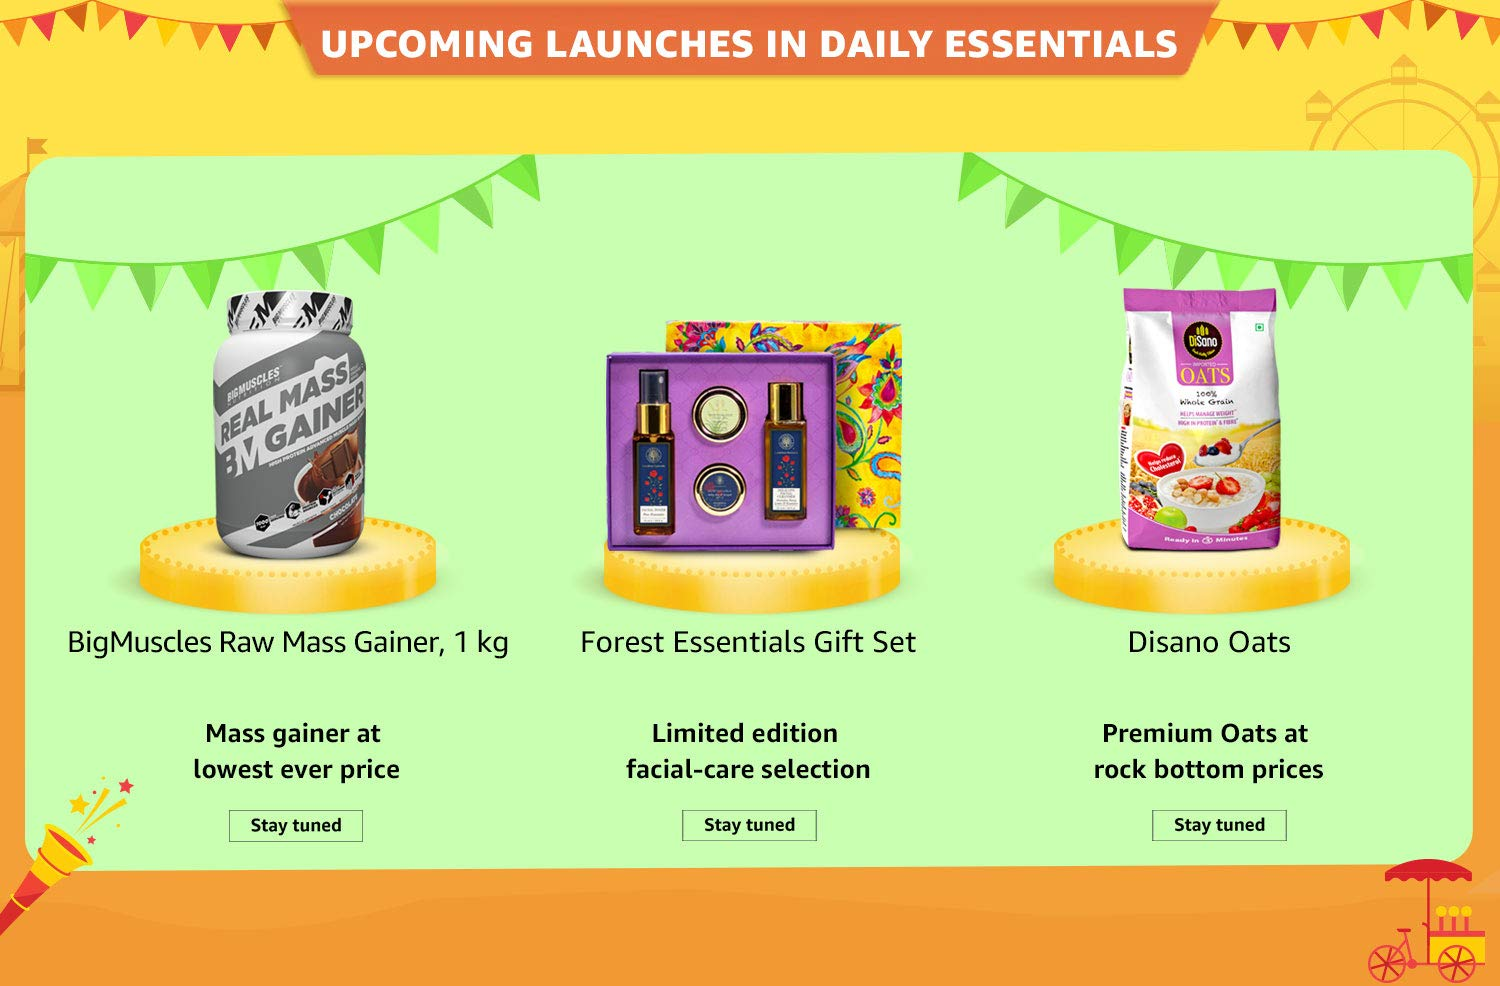 Consumables launches